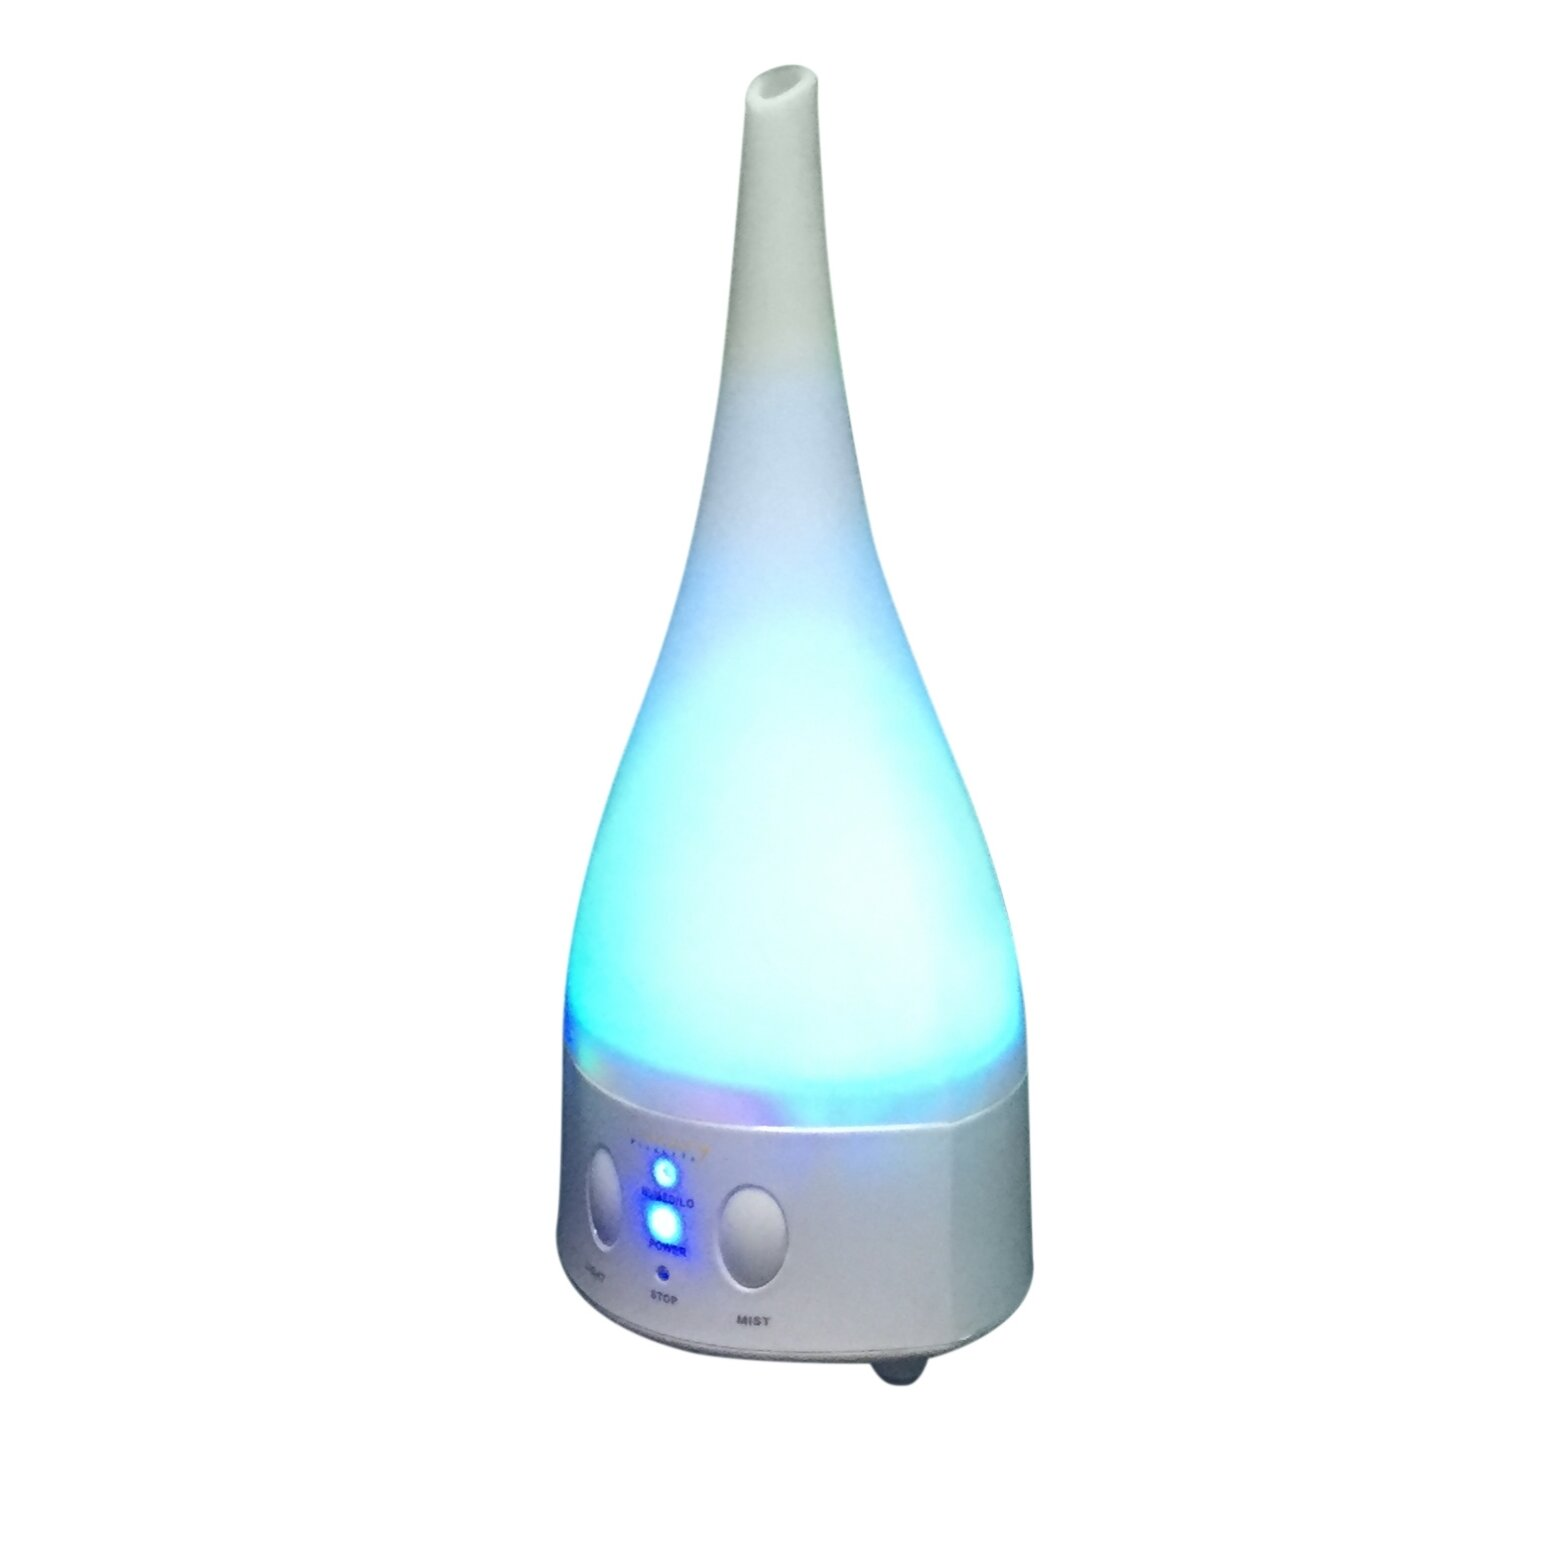 Canary products aromatherapy essential oil diffuser and gal ultrasonic humidifier with - Toddler flashlight auto shut off ...